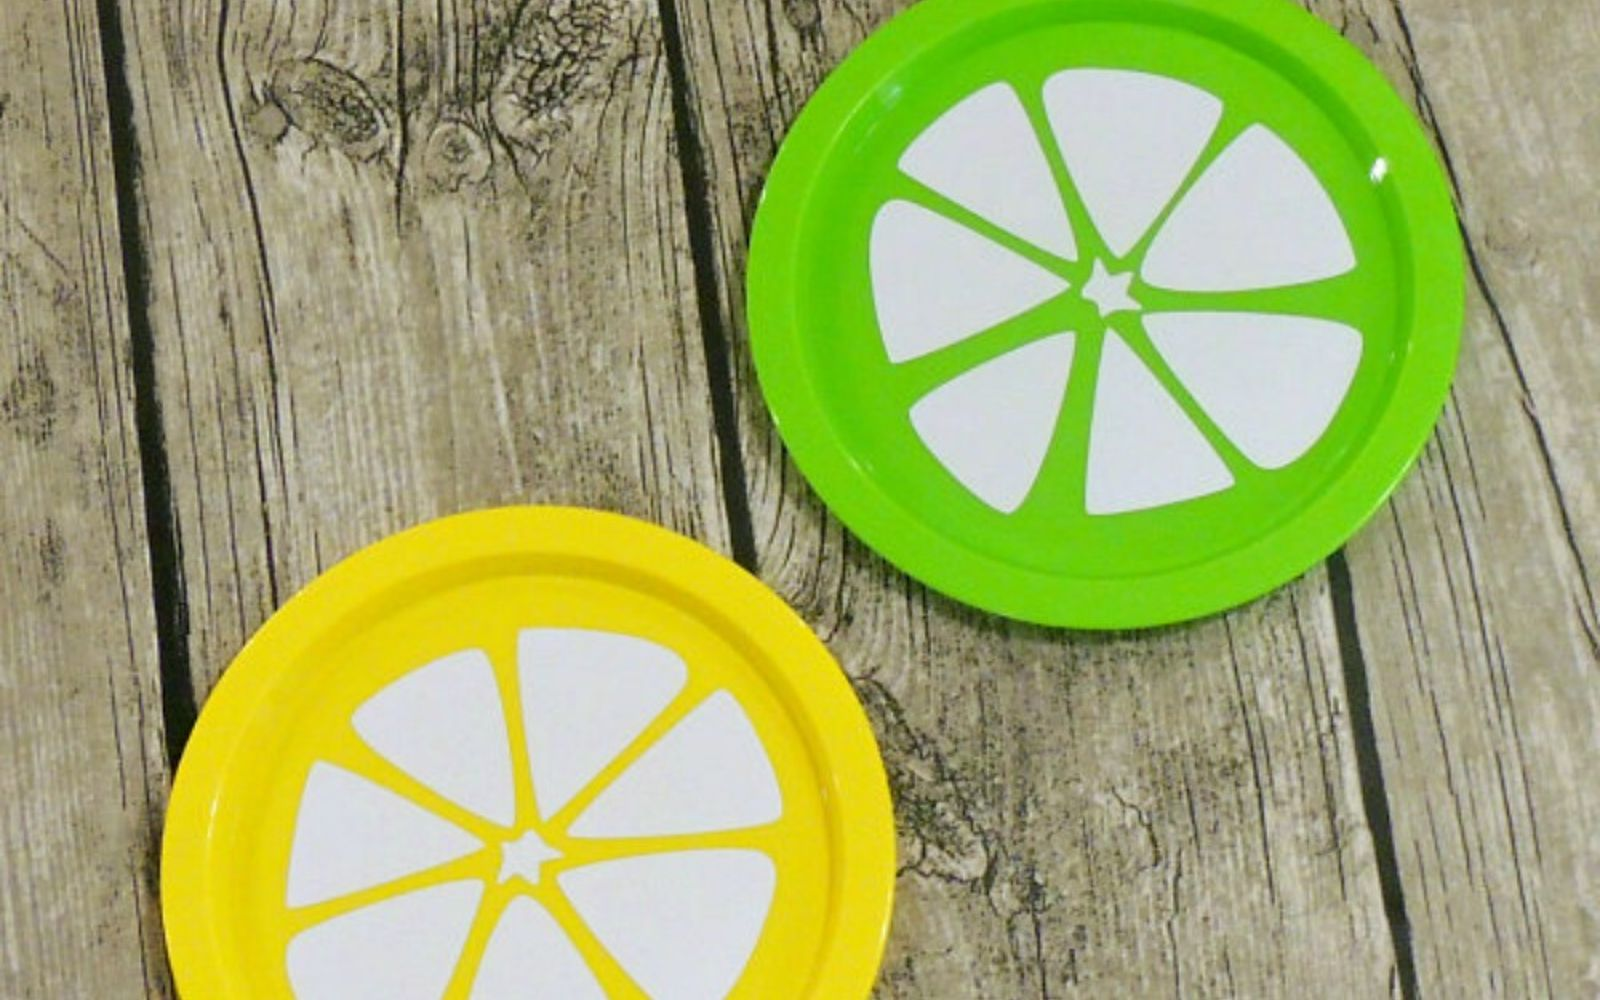 s 14 amazing things you can do with dollar store appetizer dishes, Decorate them for your BBQ table